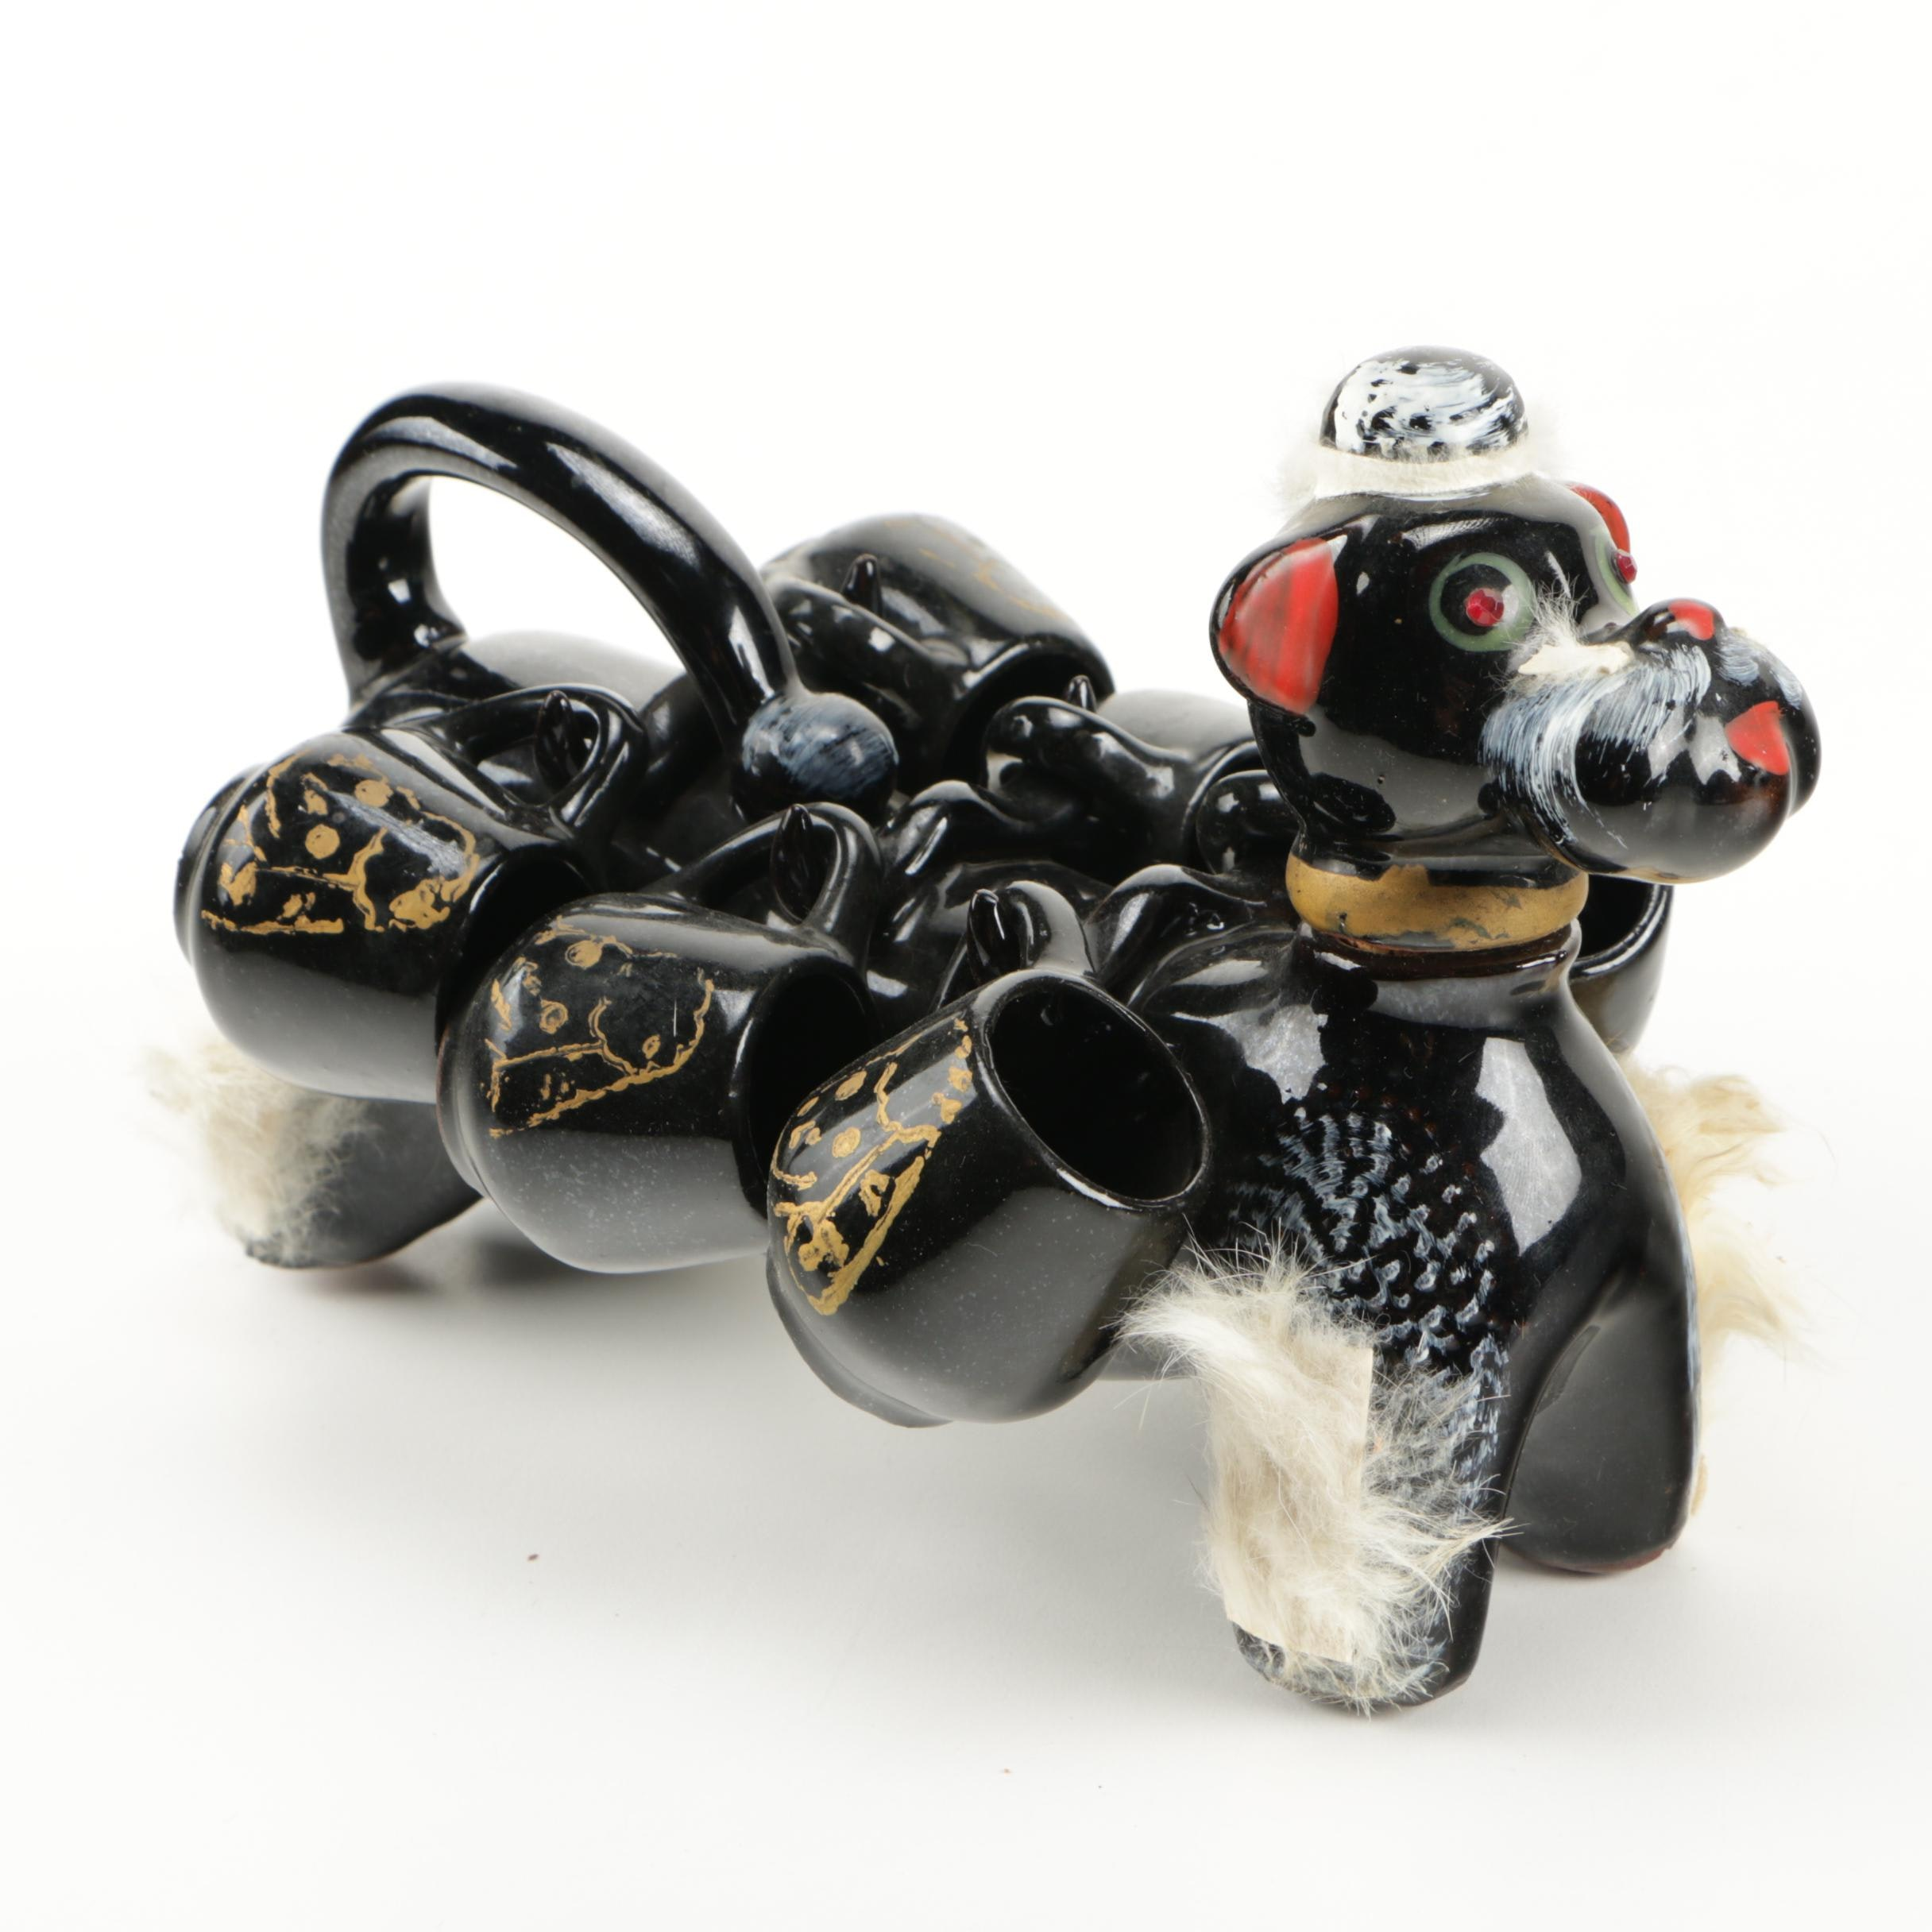 Japanese Black Ceramic Dog Tea Set